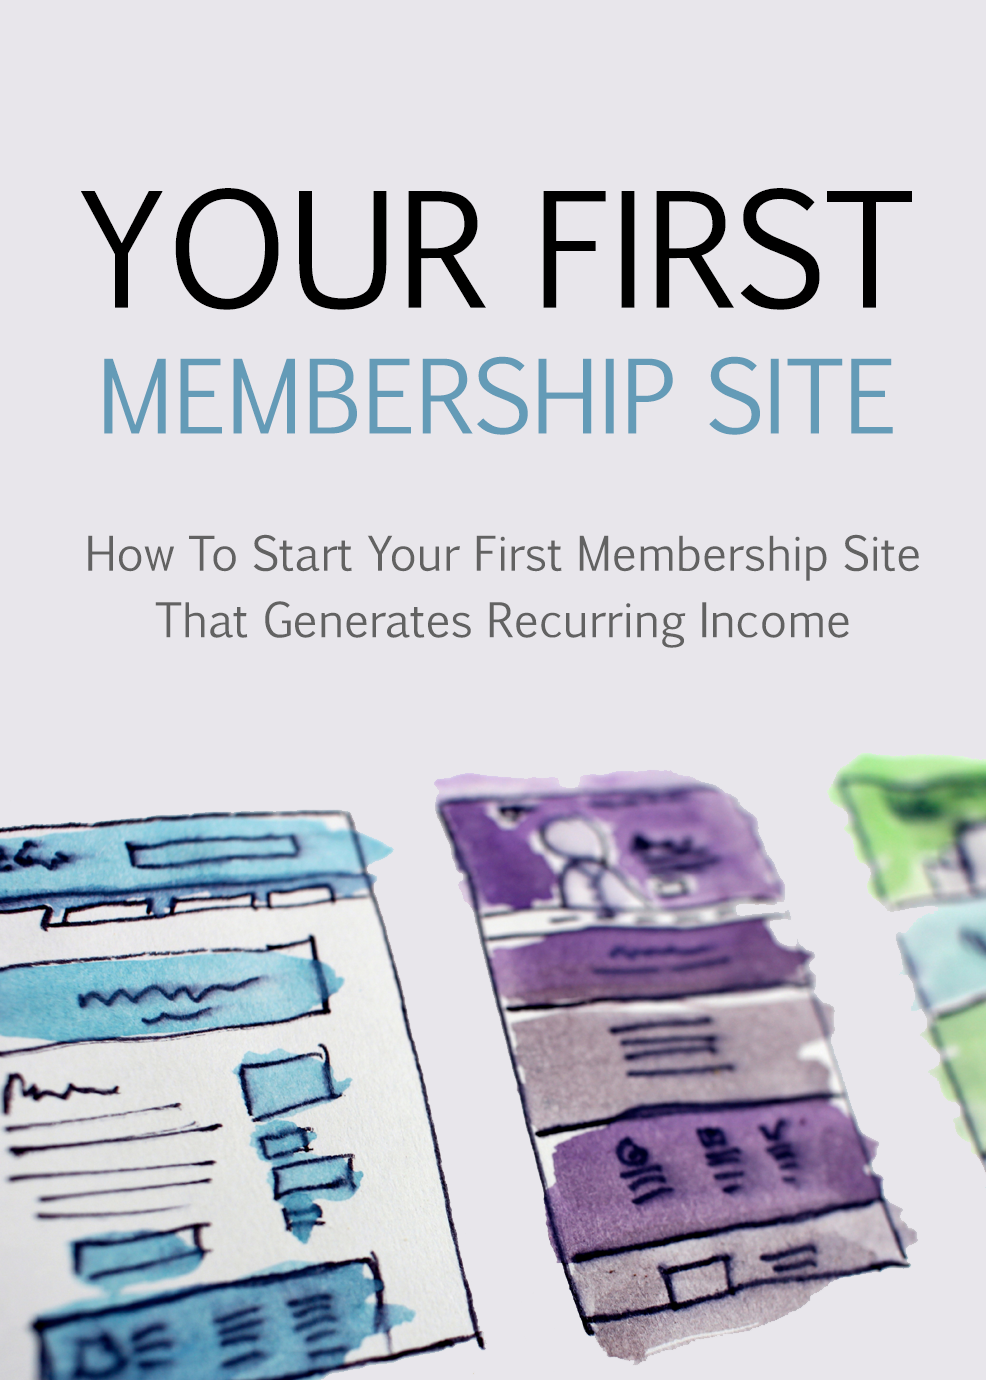 Your First Membership Site (How To Start Your First Membership Site That Generates Recurring Income) Ebook's Book Image